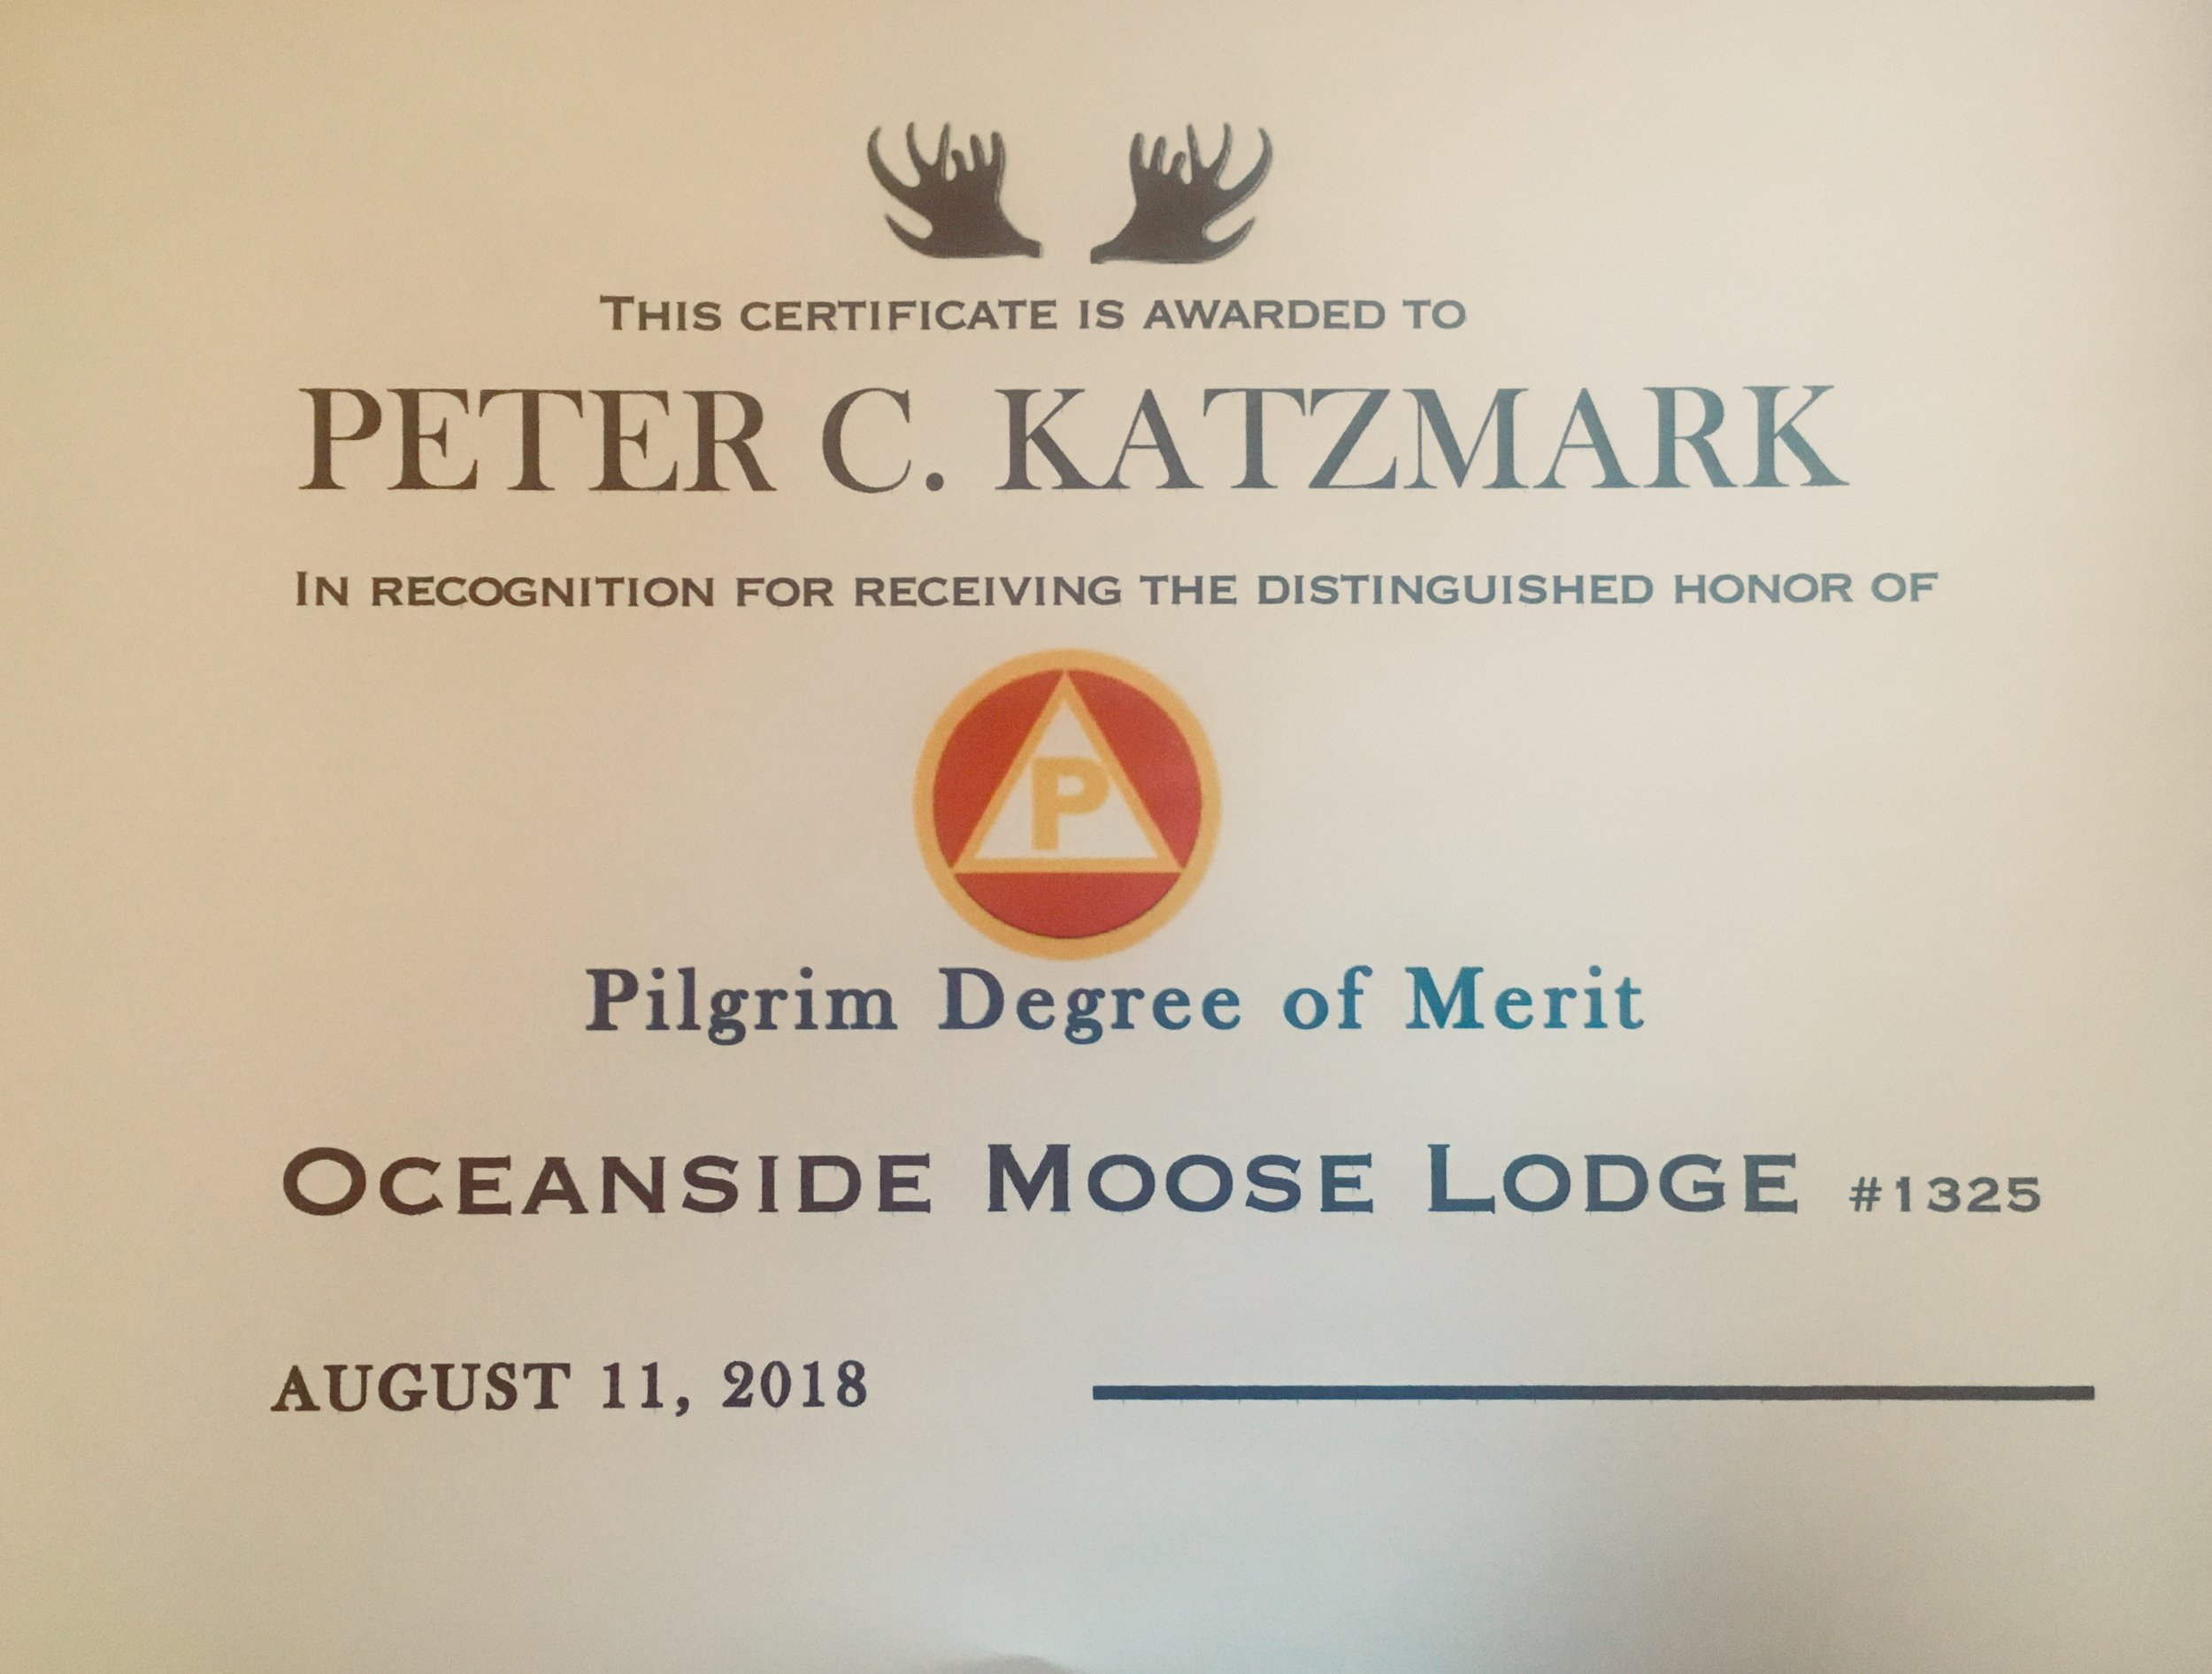 Pilgrim Degree of Merit - Peter Katzmark (deceased) recently honored with the Pilgrim Degree of Merit. Peter has been distinguished as a man of meritorious service to the Order.